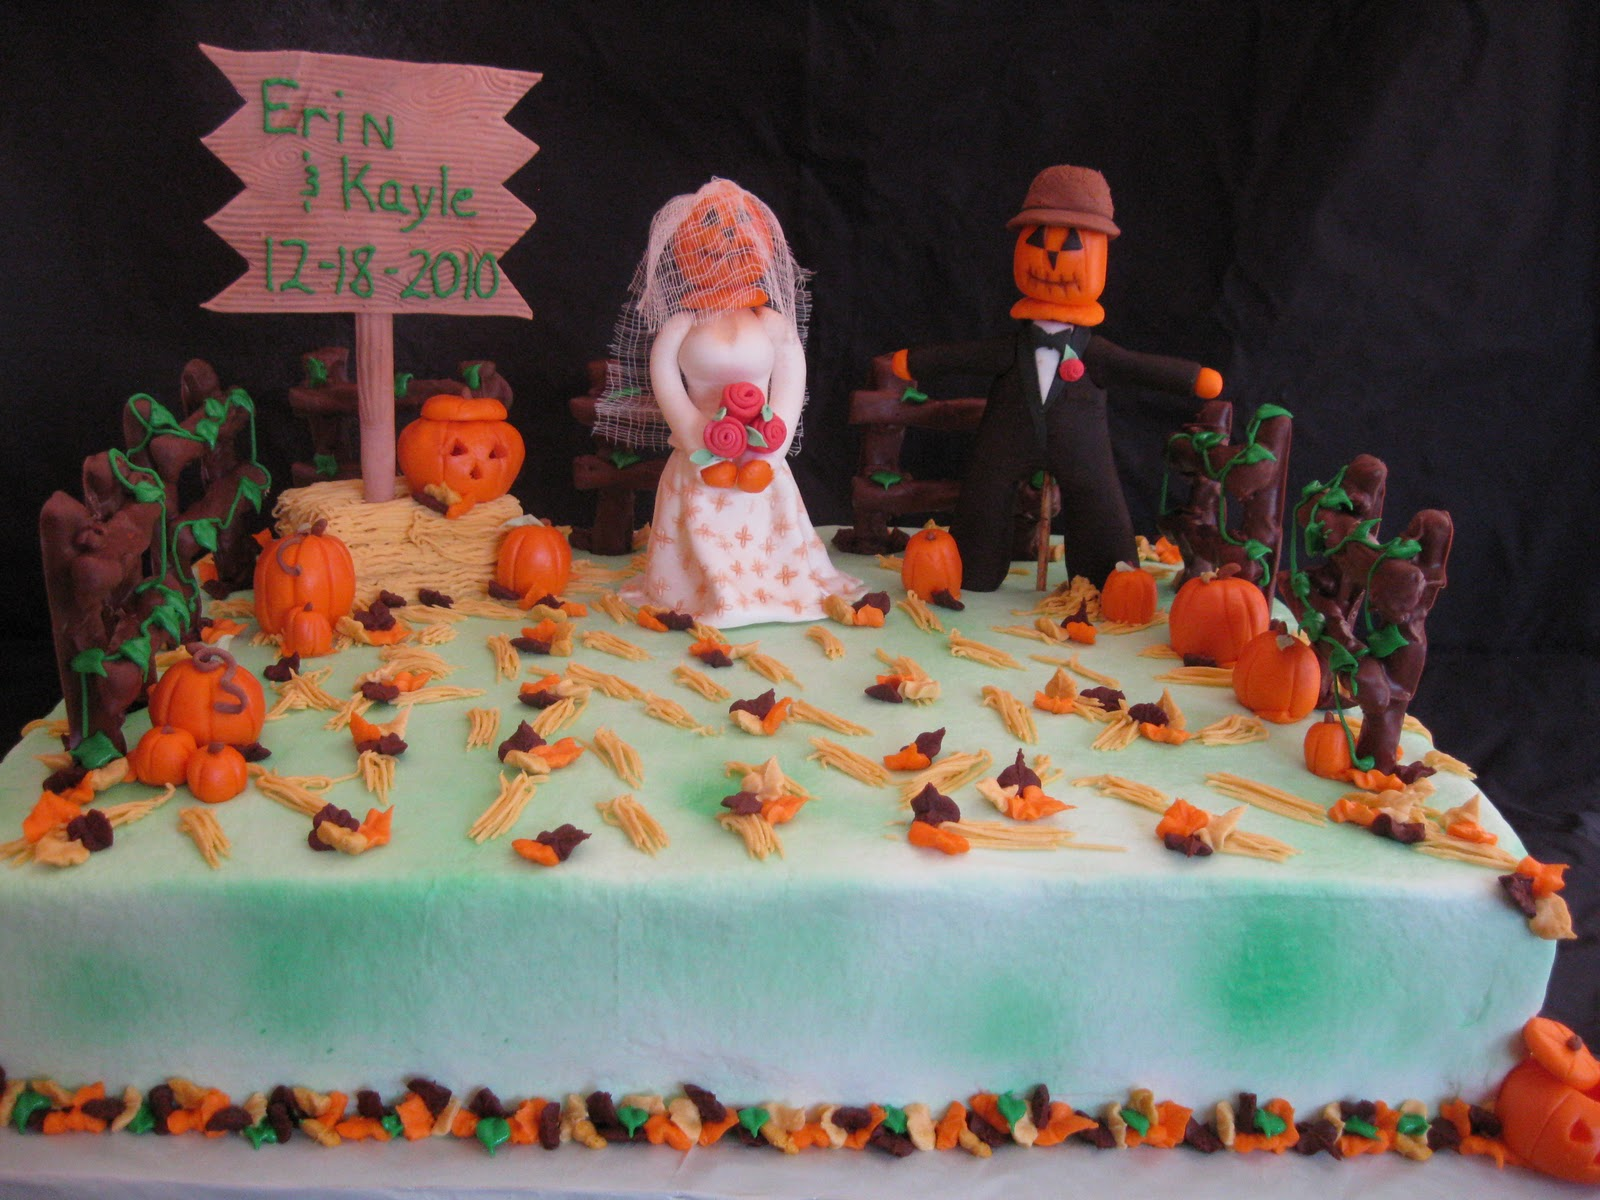 D's Cookie Jar & More: Fall Bridal Shower cake